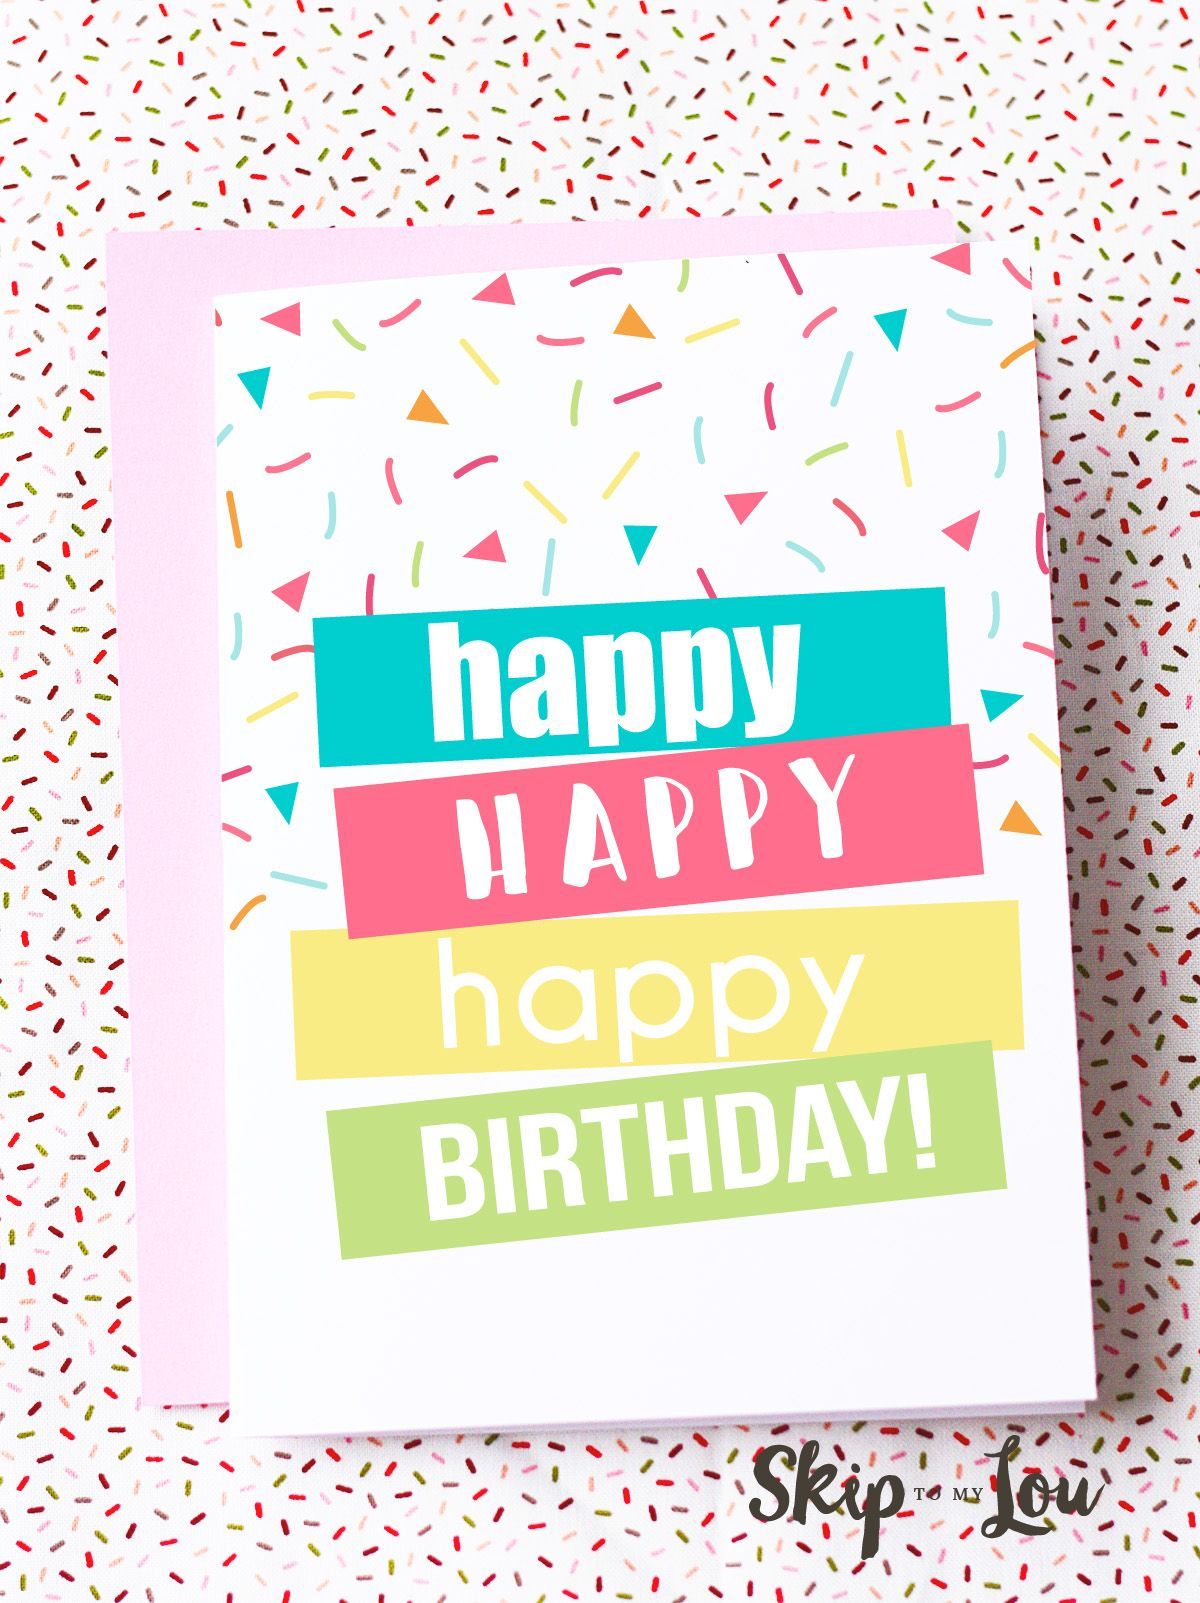 Free Printable Happy Birthday Card Need A Last Minute Print This At Home And Youre All Set For Sweet Gift